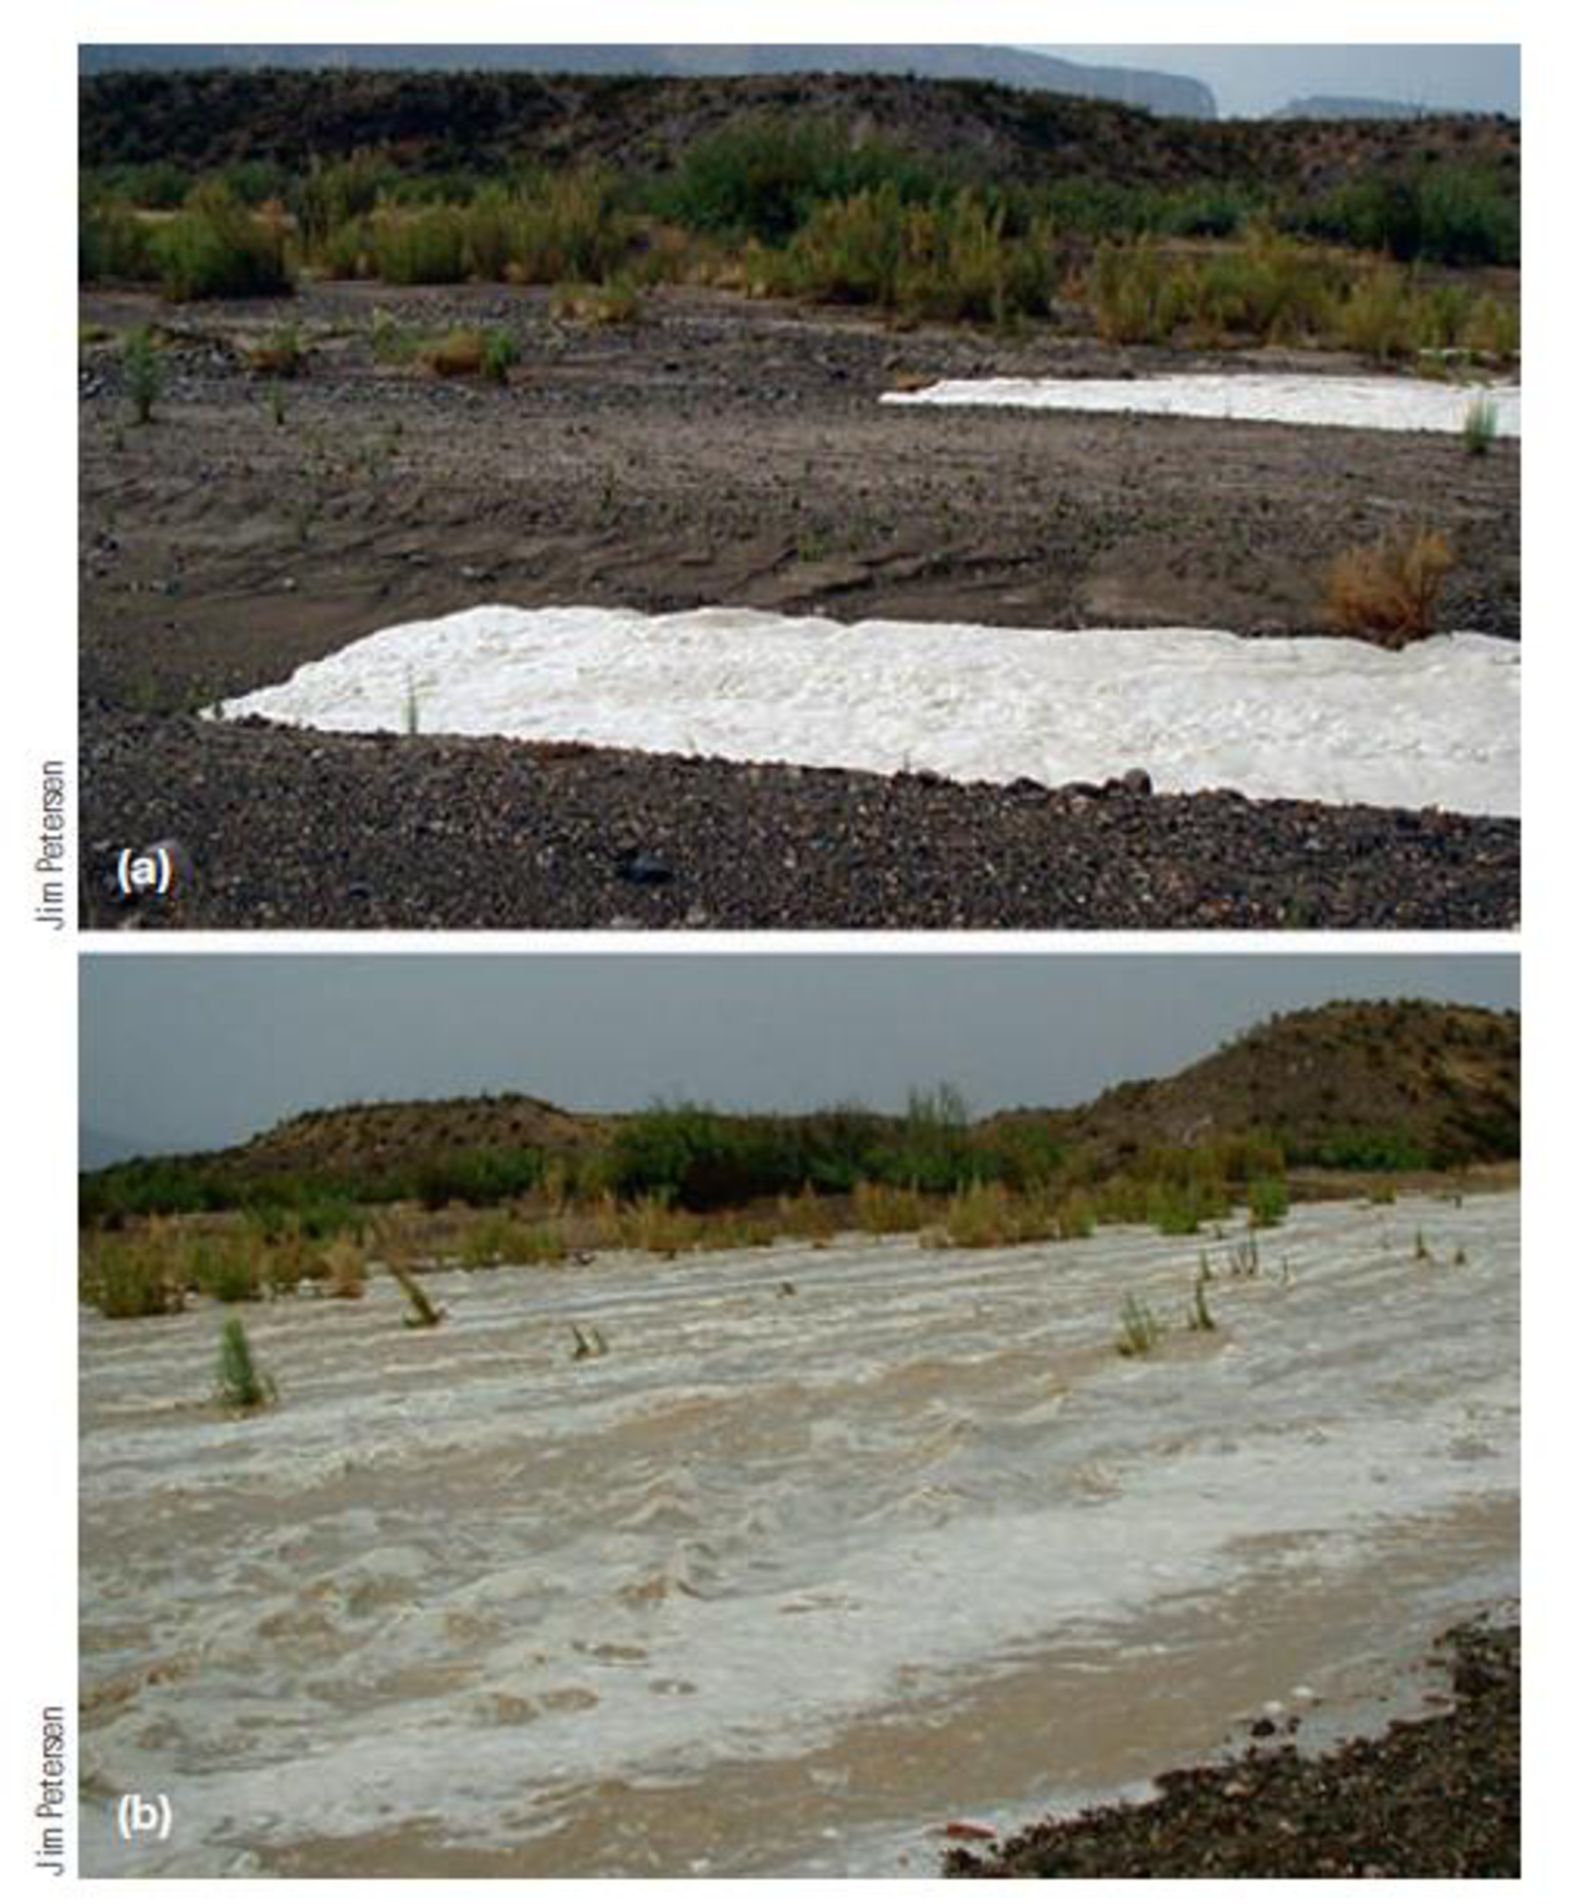 Chapter 7, Problem 19FQ, FIGURE 7.19 Intense rainfall in arid regions can cause flash floods like this one in the Chihuahuan